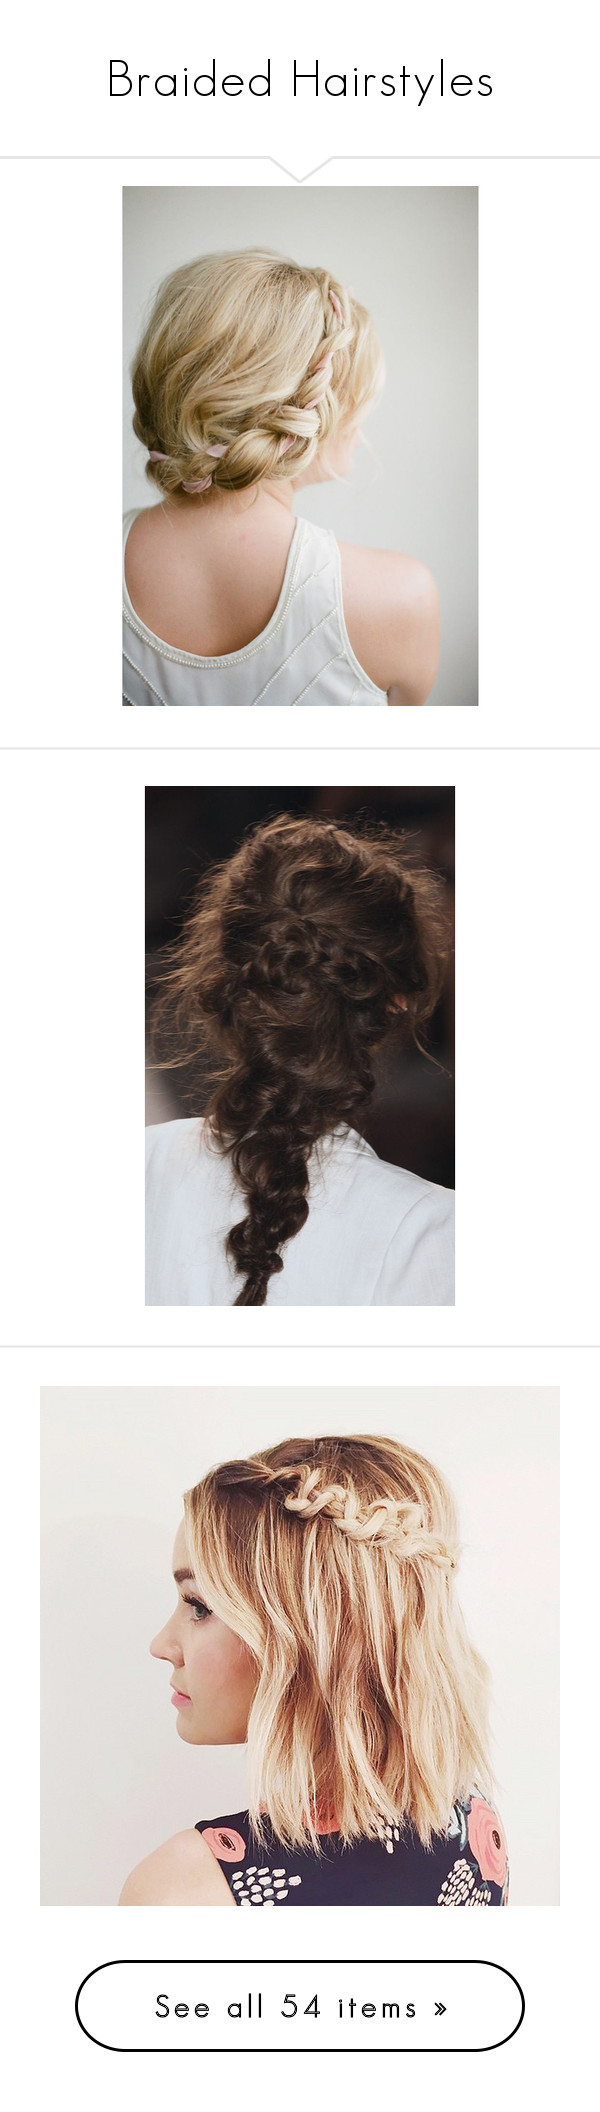 """""""Braided Hairstyles"""" by happy-fashionx ❤ liked on Polyvore featuring beauty products, haircare, hair styling tools, hair, hairstyles, beauty, braids, pictures, hair styles and filler"""